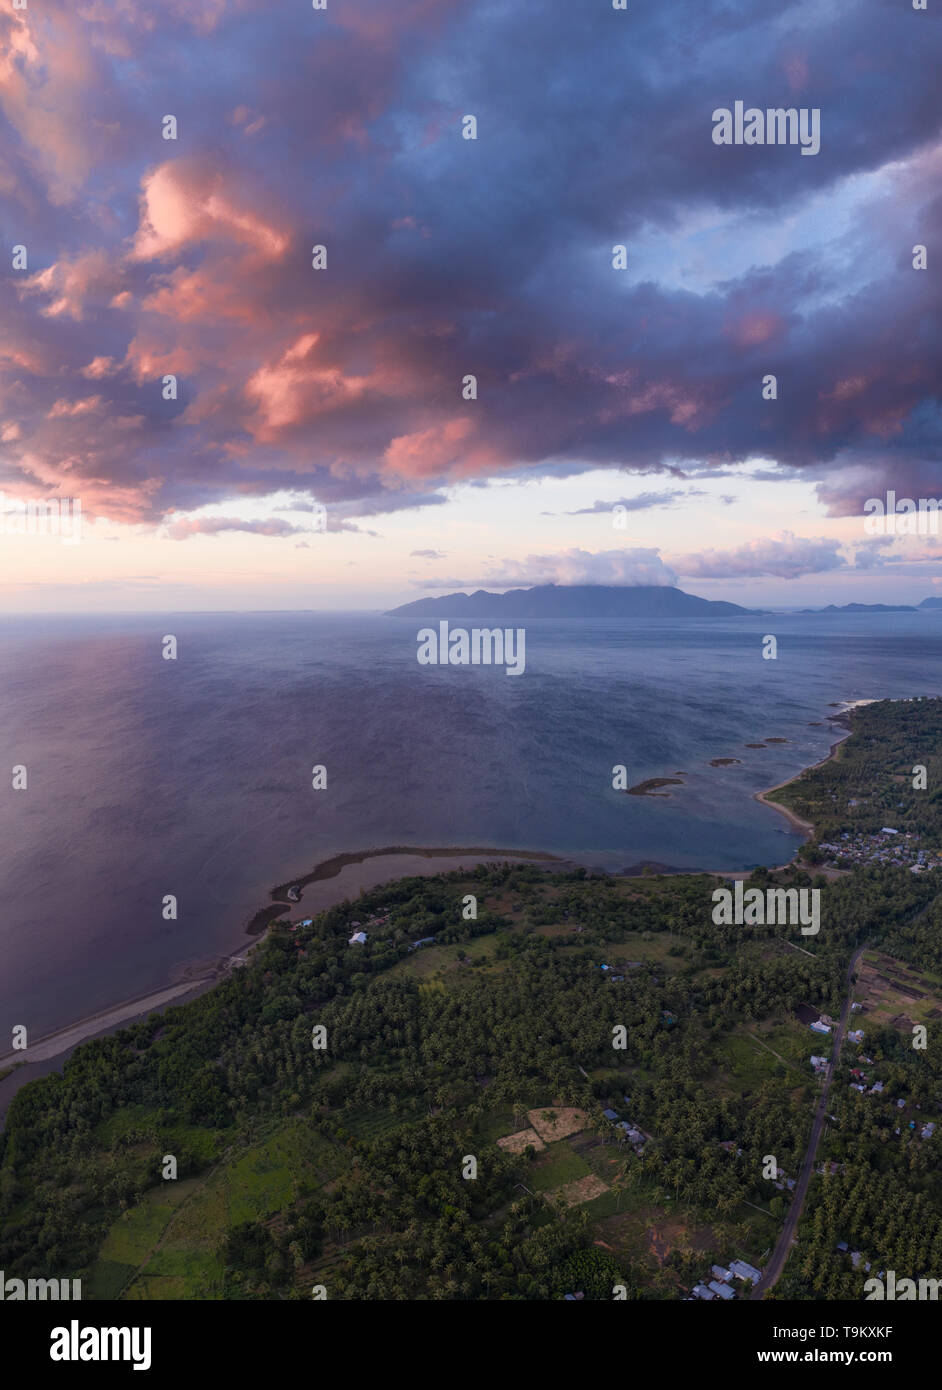 Seen from an aerial view, the tropical island of Flores is illuminated at sunset. Flores is part of the Lesser Sunda Islands of Indonesia. - Stock Image